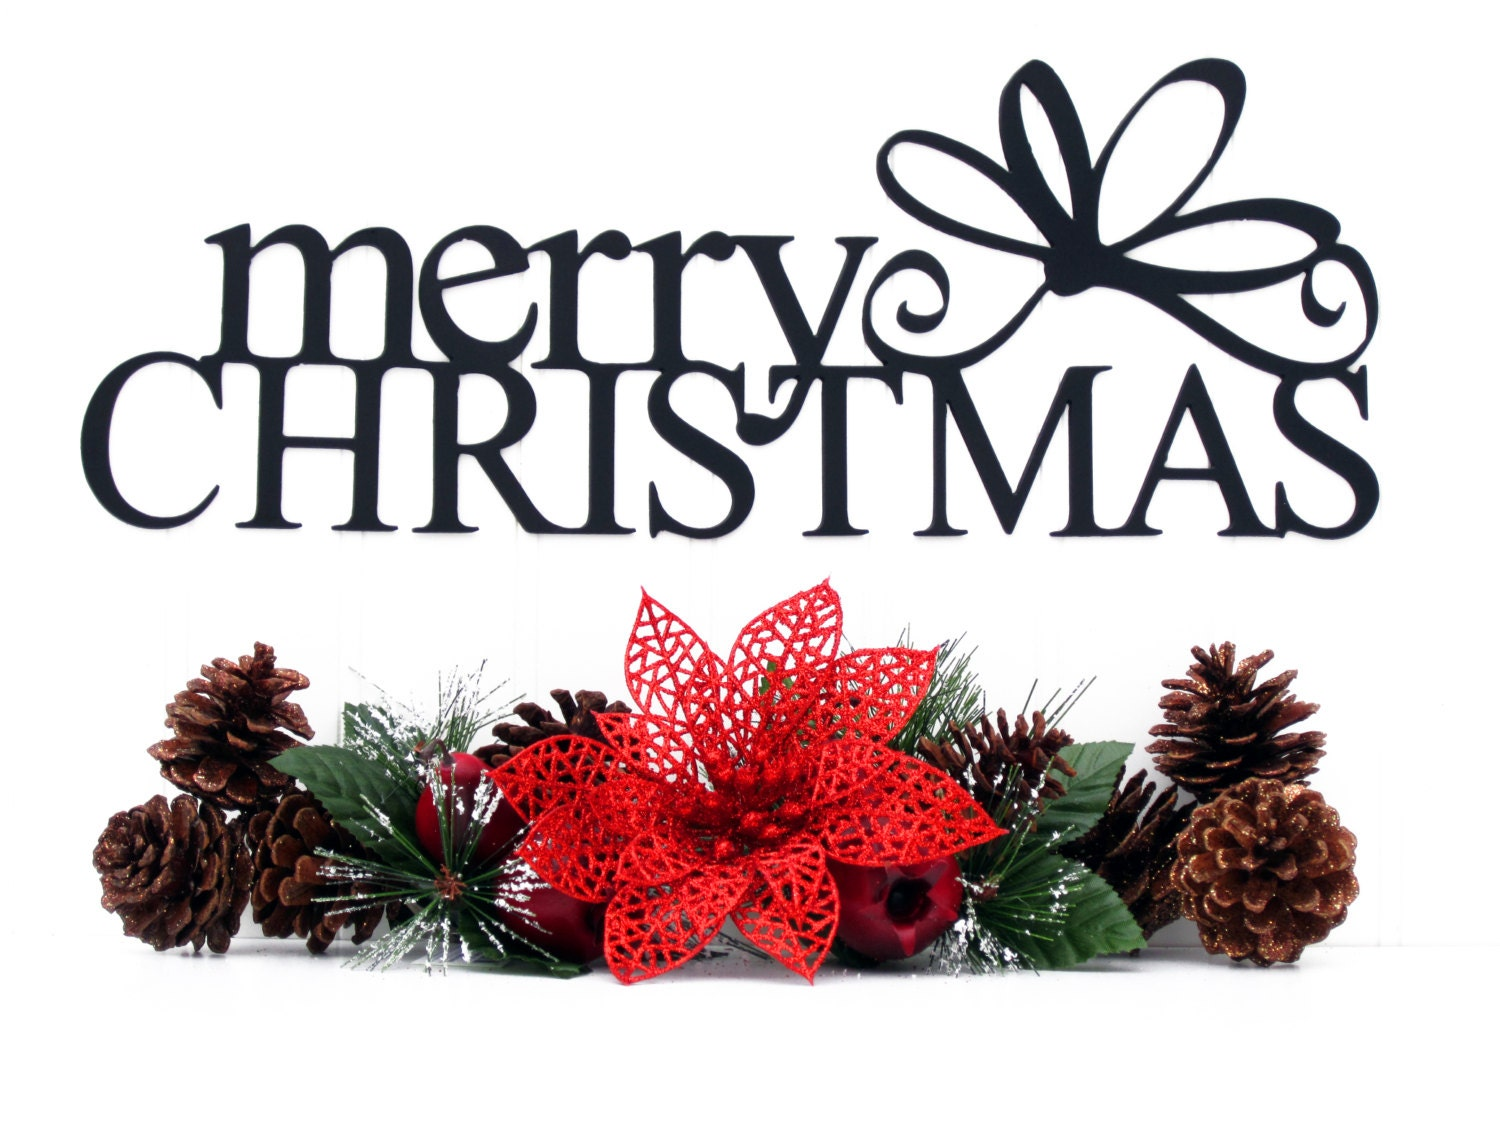 Merry christmas metal sign with bow black xmas